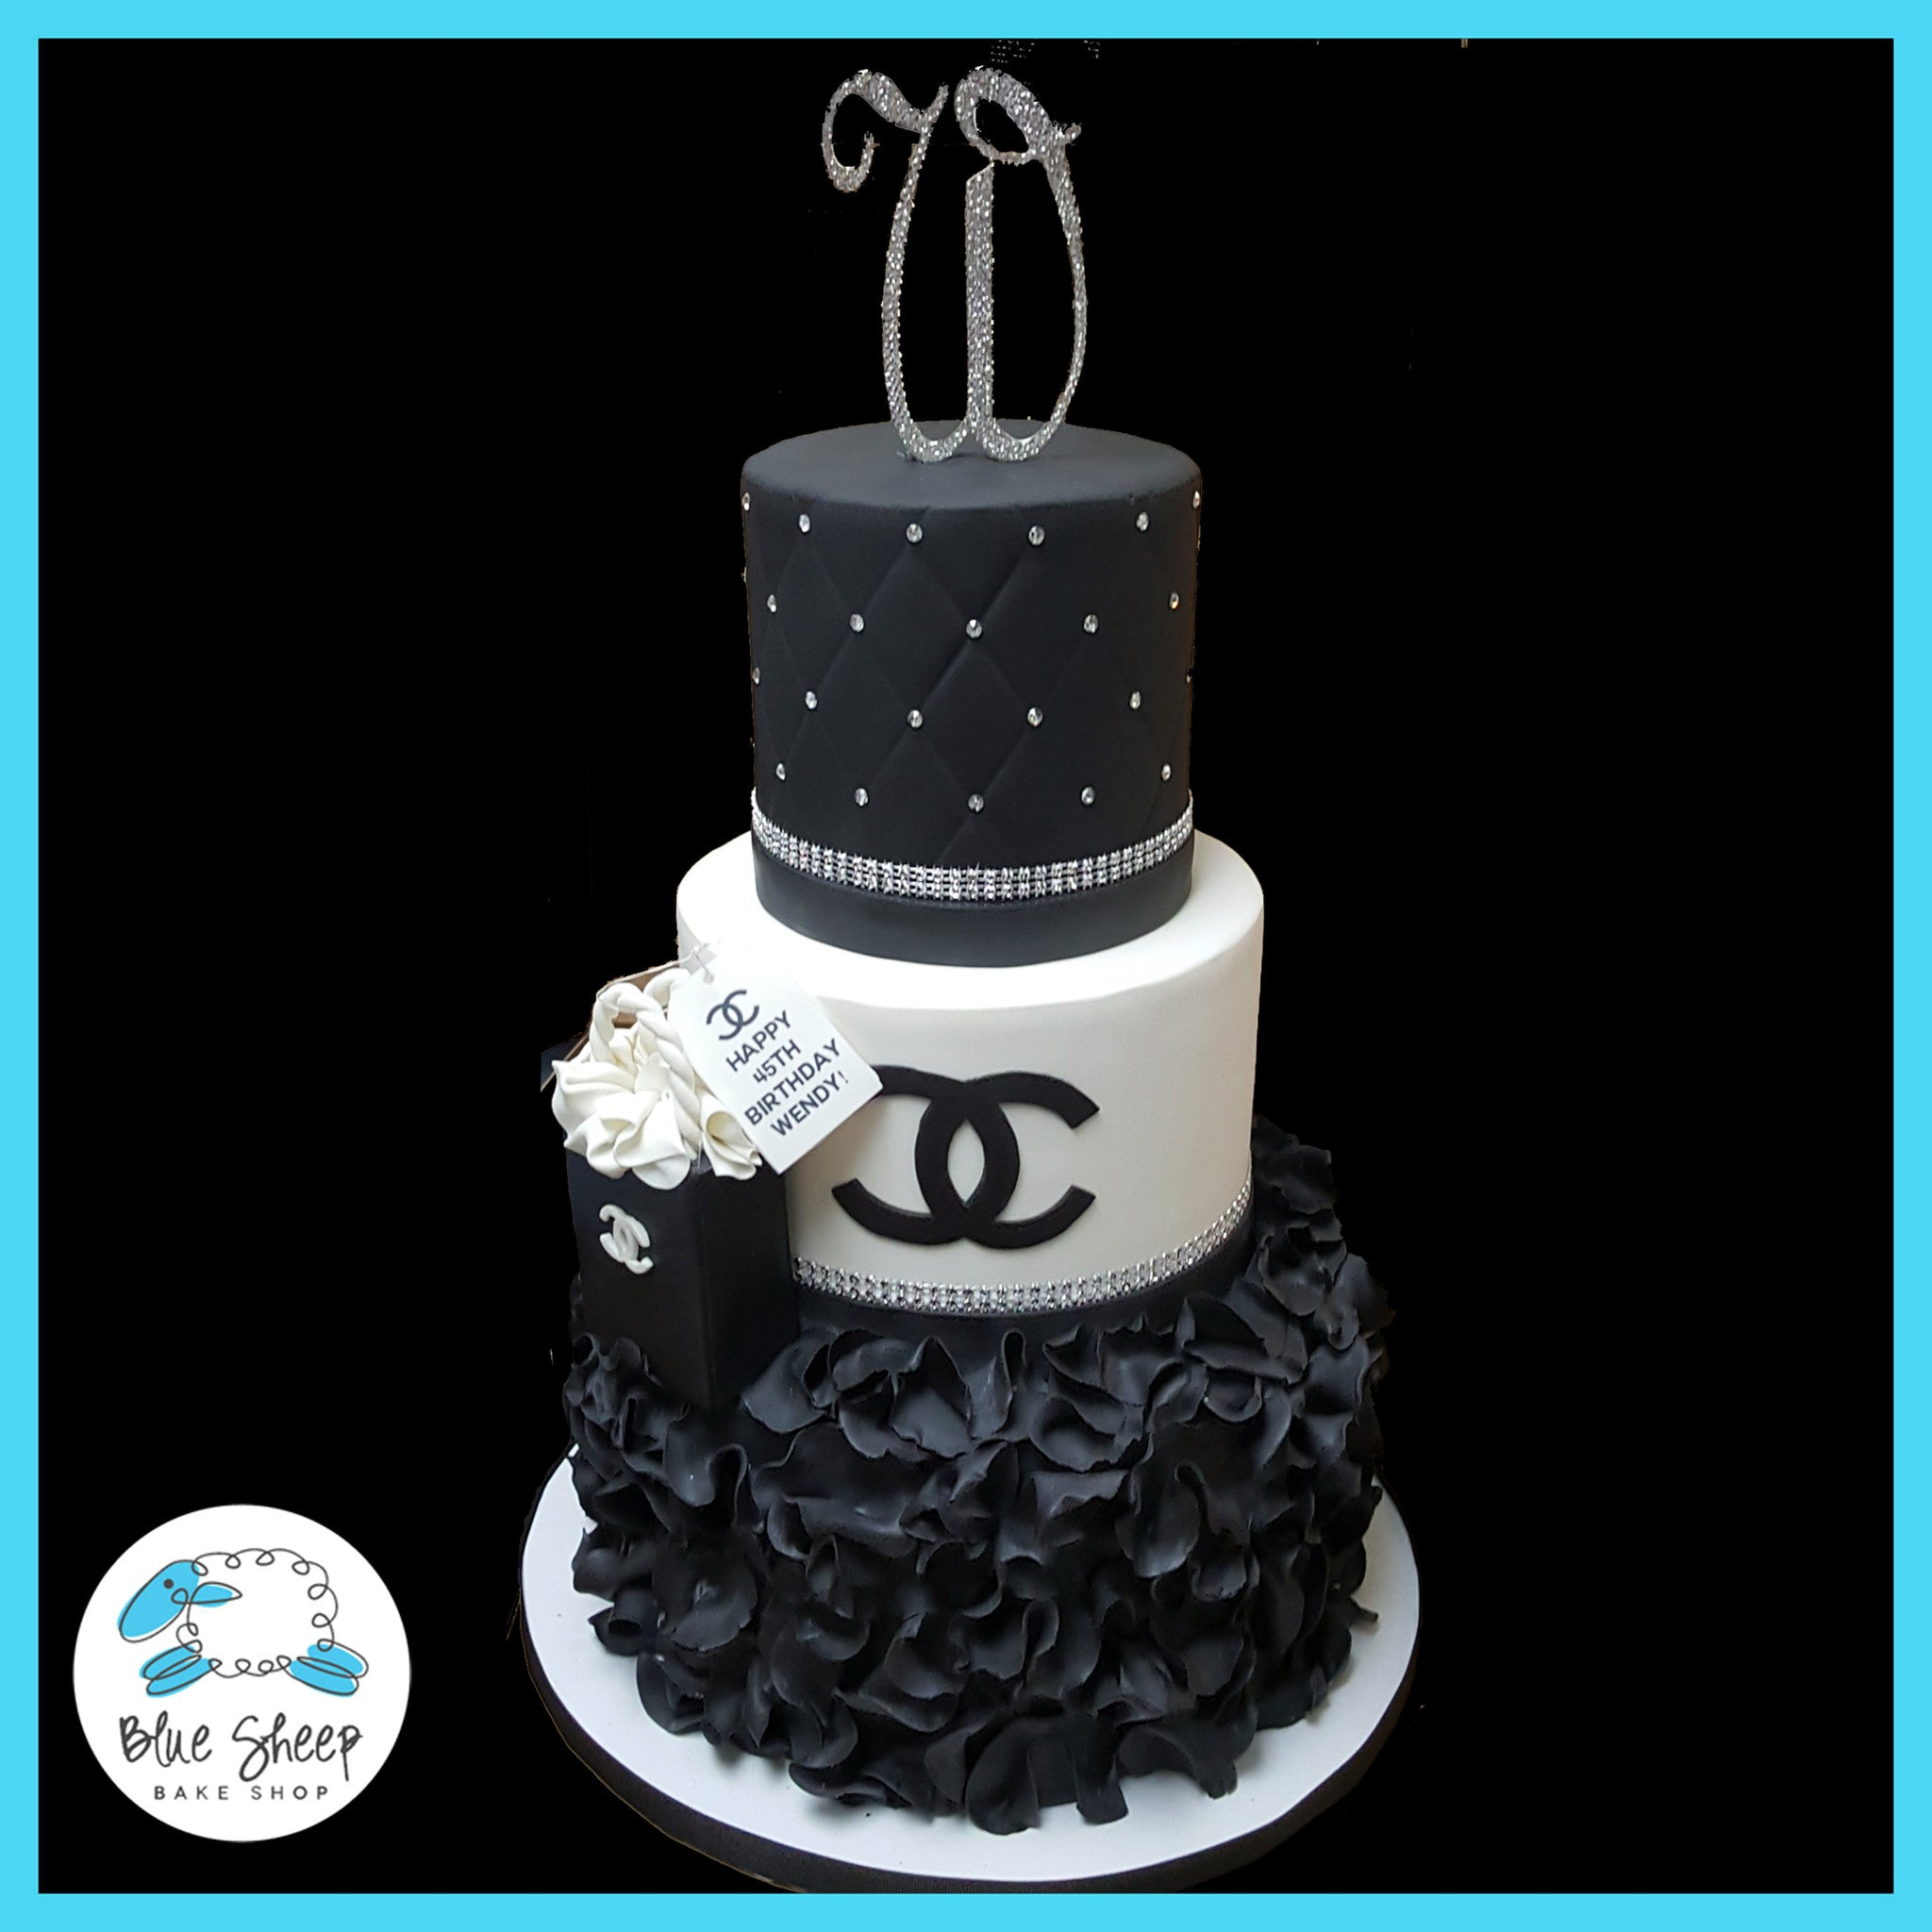 50th Birthday Black And White Chanel Inspired Cake Blue Sheep Bake